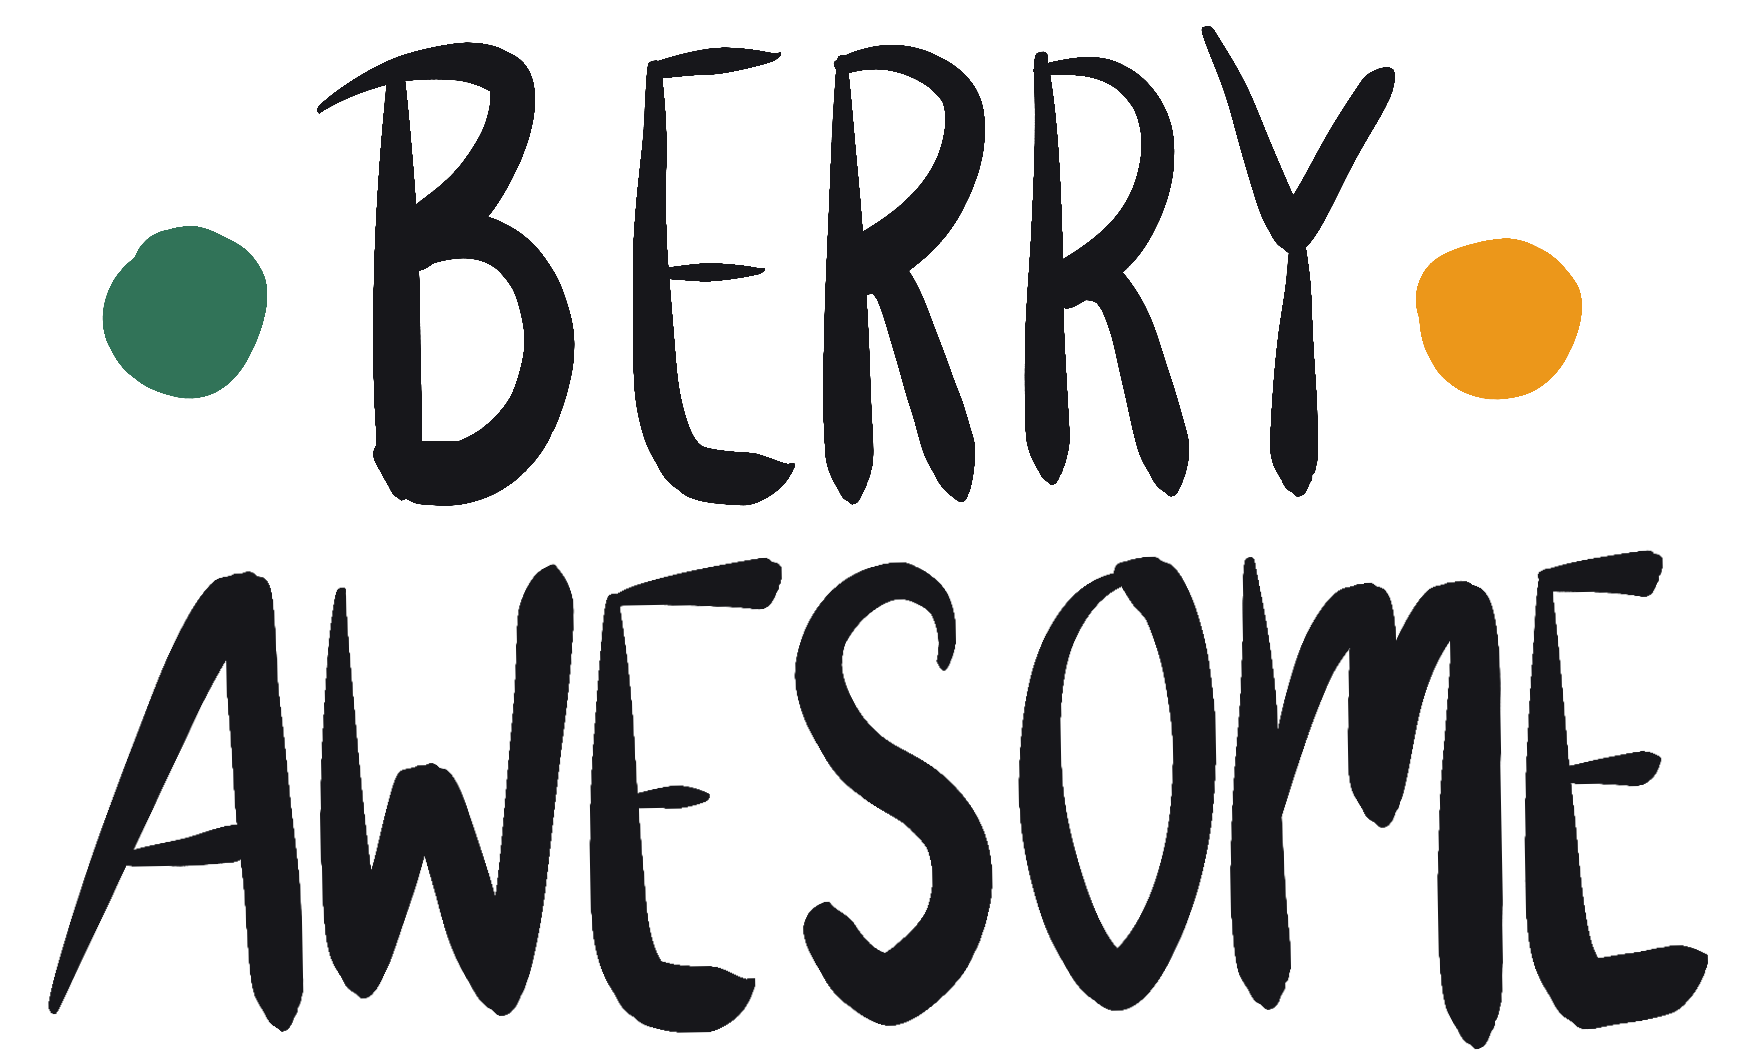 Berry Awesome